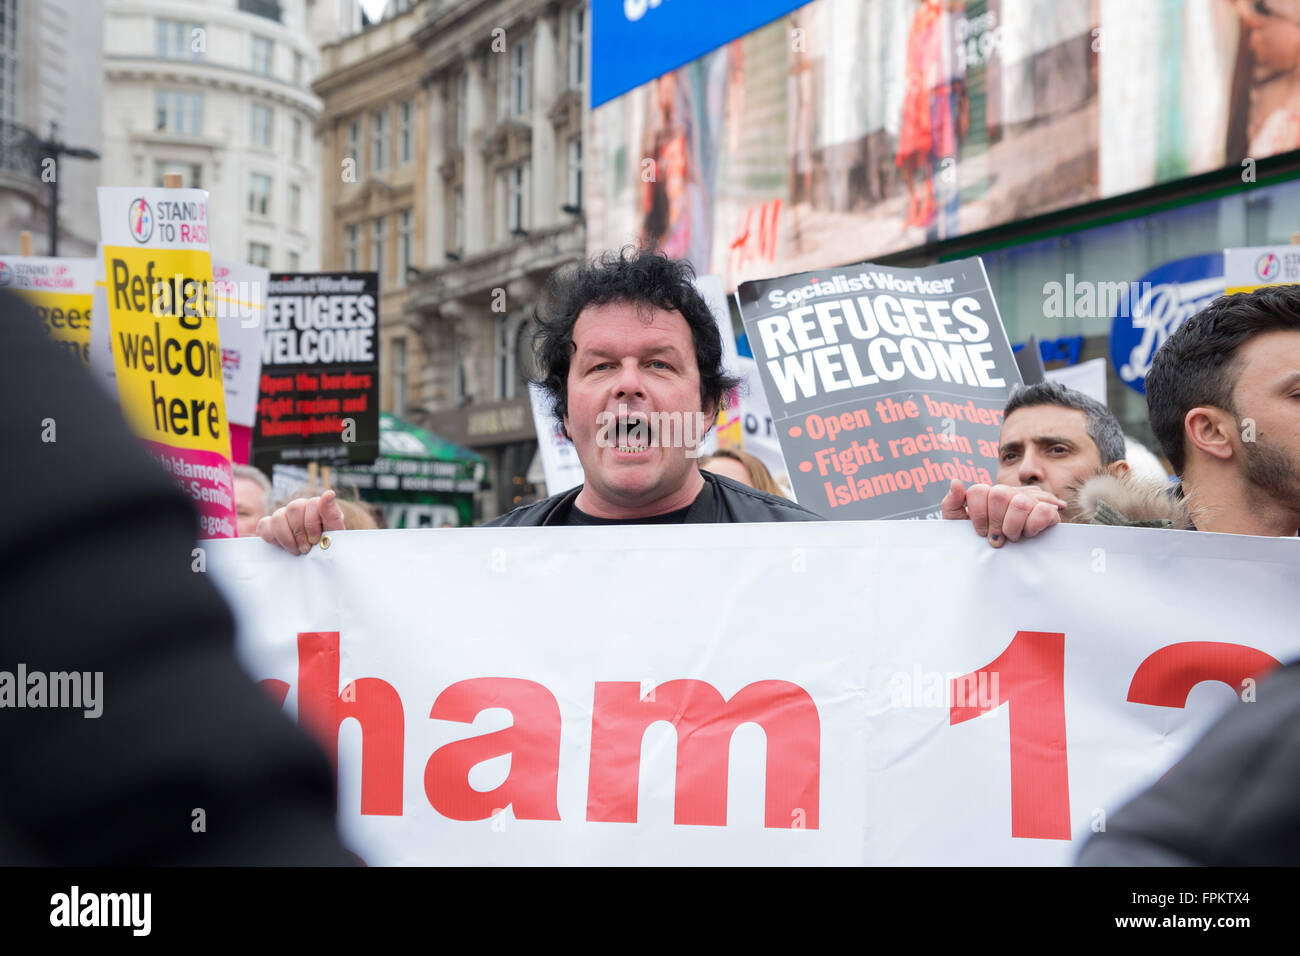 London, UK. 19th March 2016  Thousands of marchers during the anti Racism march held in London, UK  Credit: Pete - Stock Image